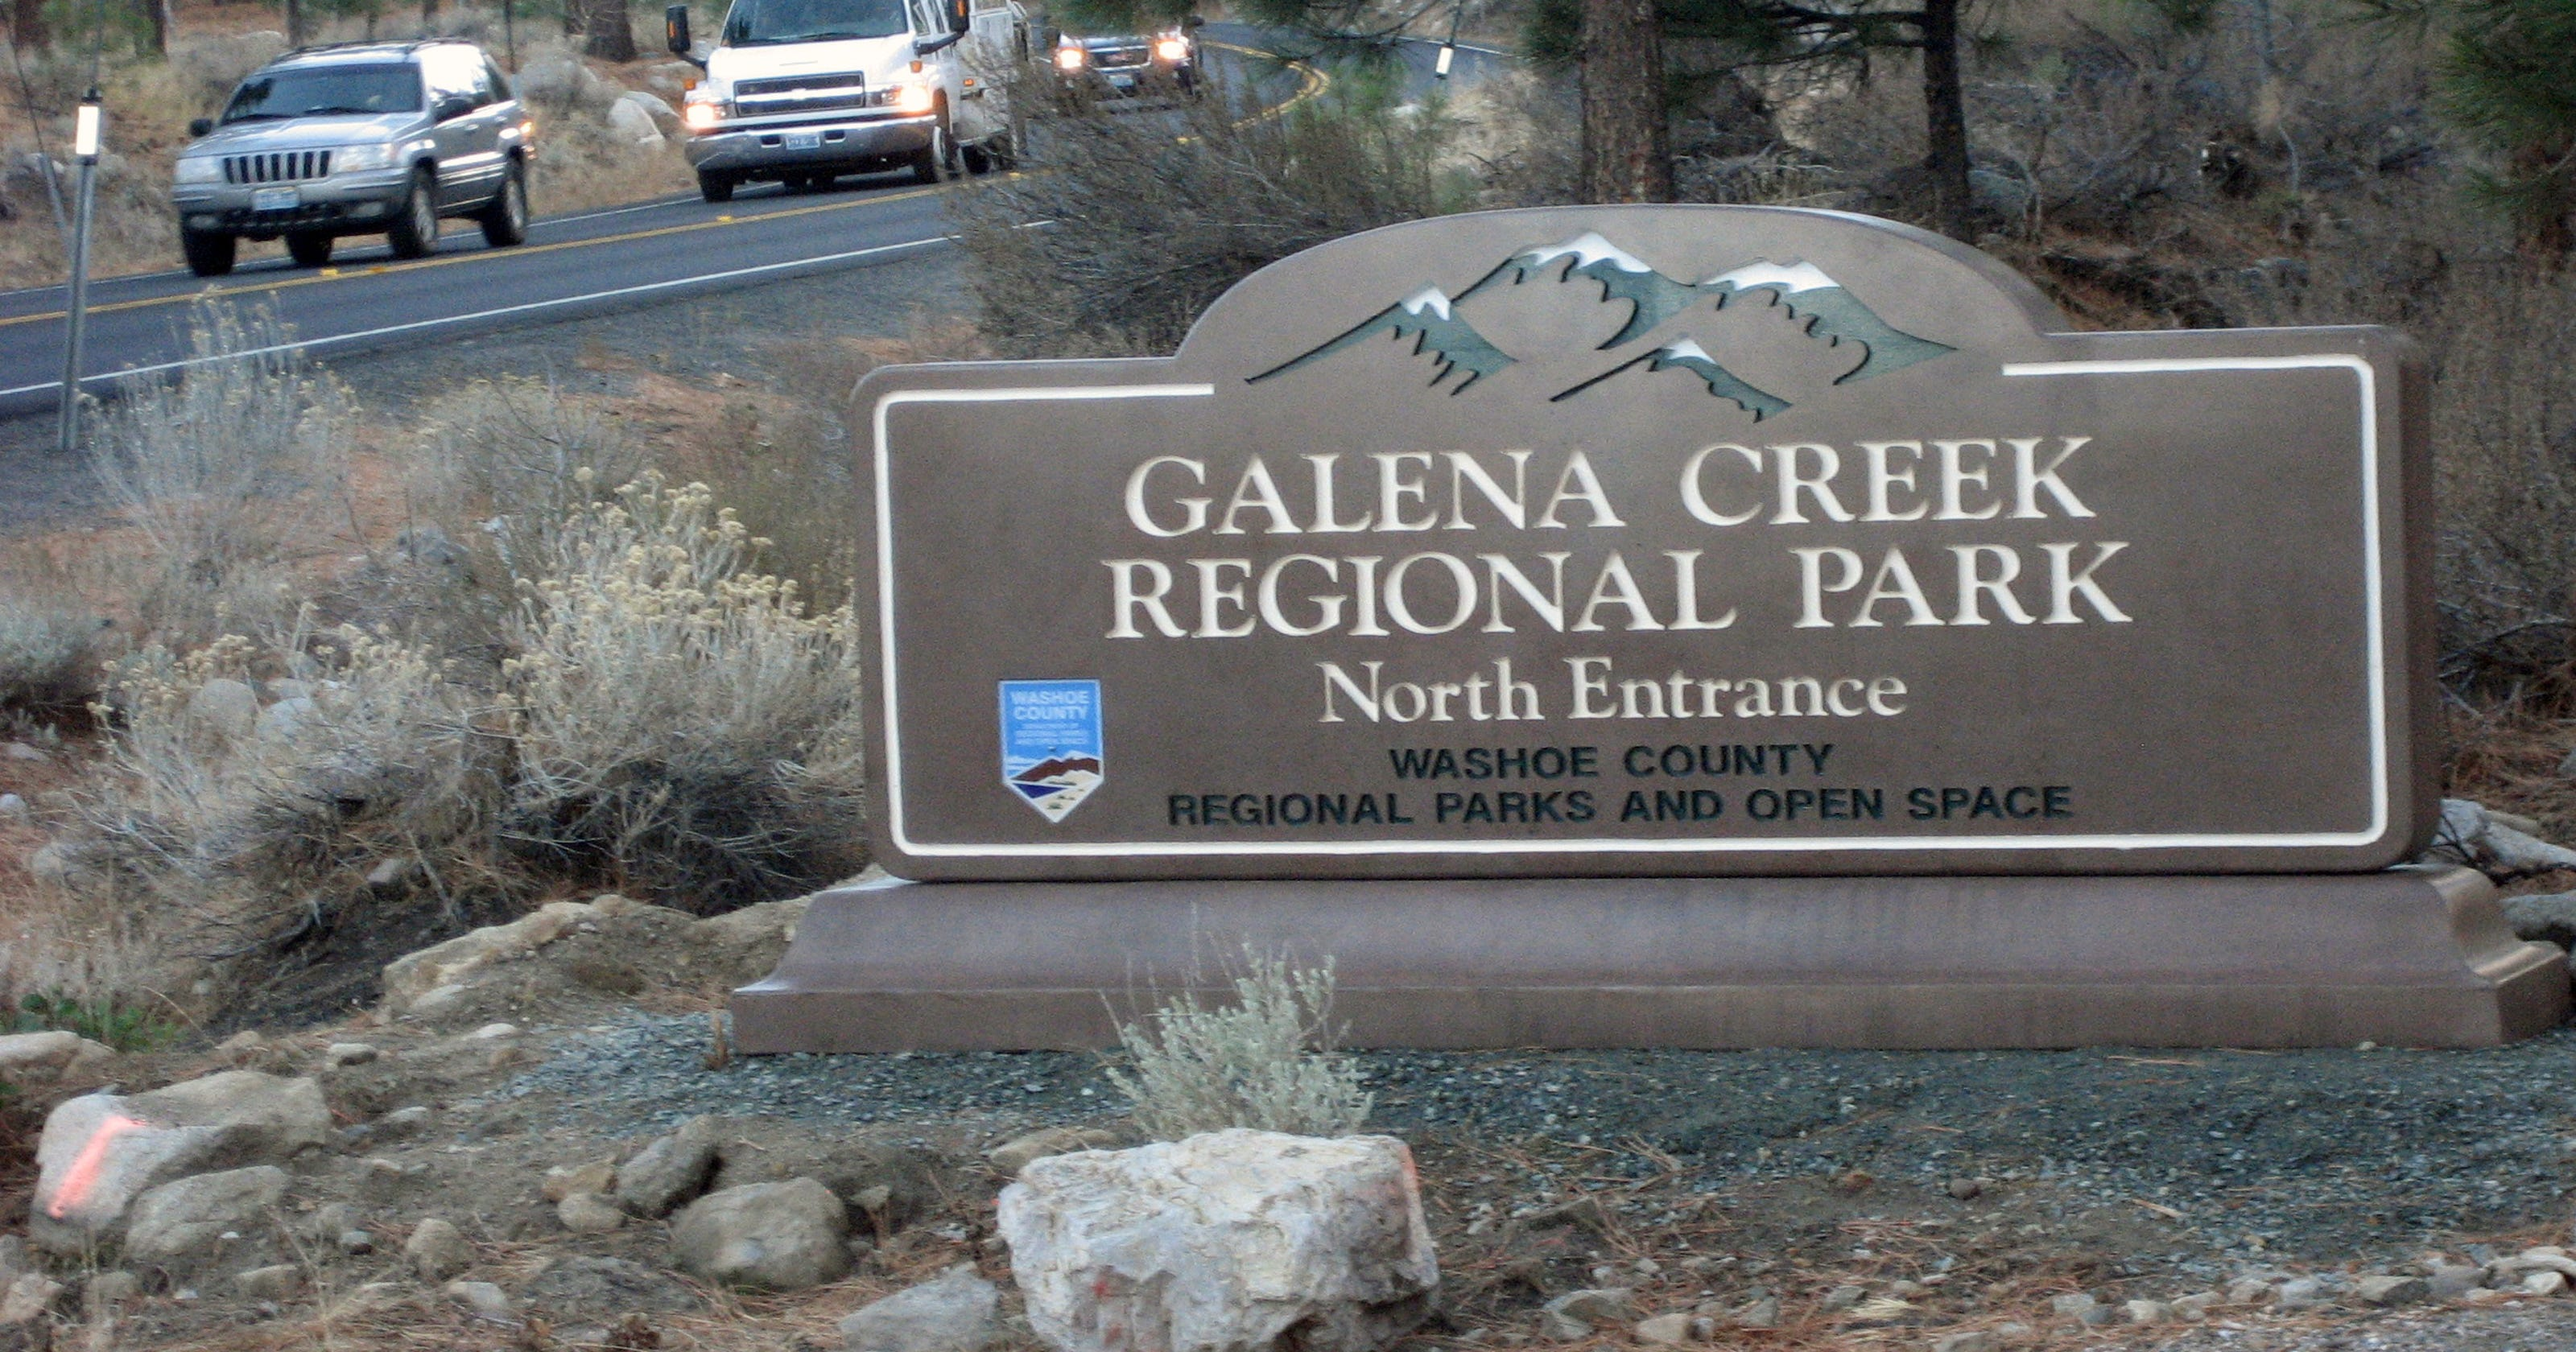 Fire agencies to hold Kids' Fire Camp at Galena Creek